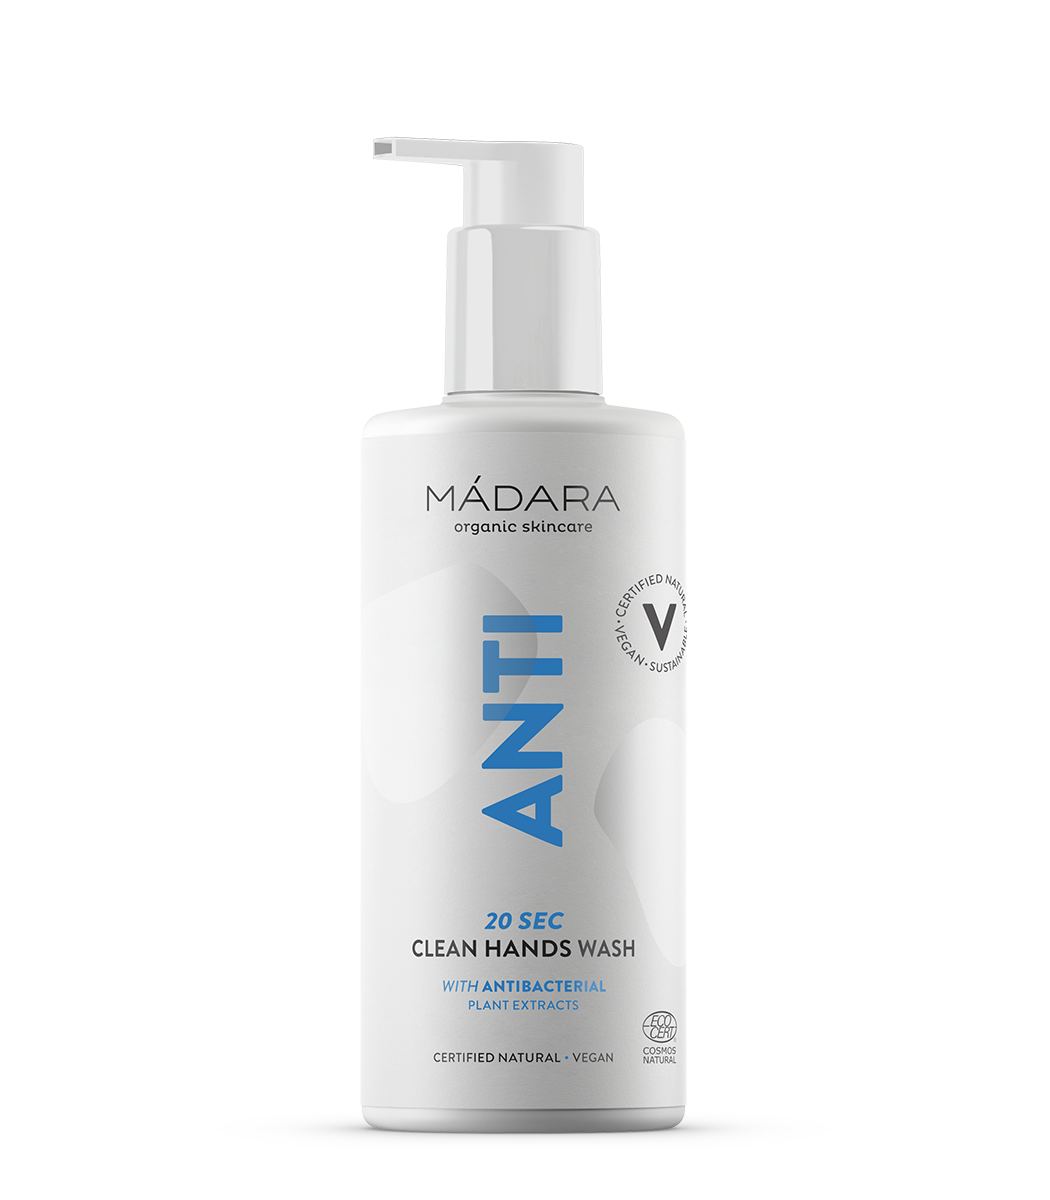 Mádara Anti 20sec Clean Hands Wash 300ml